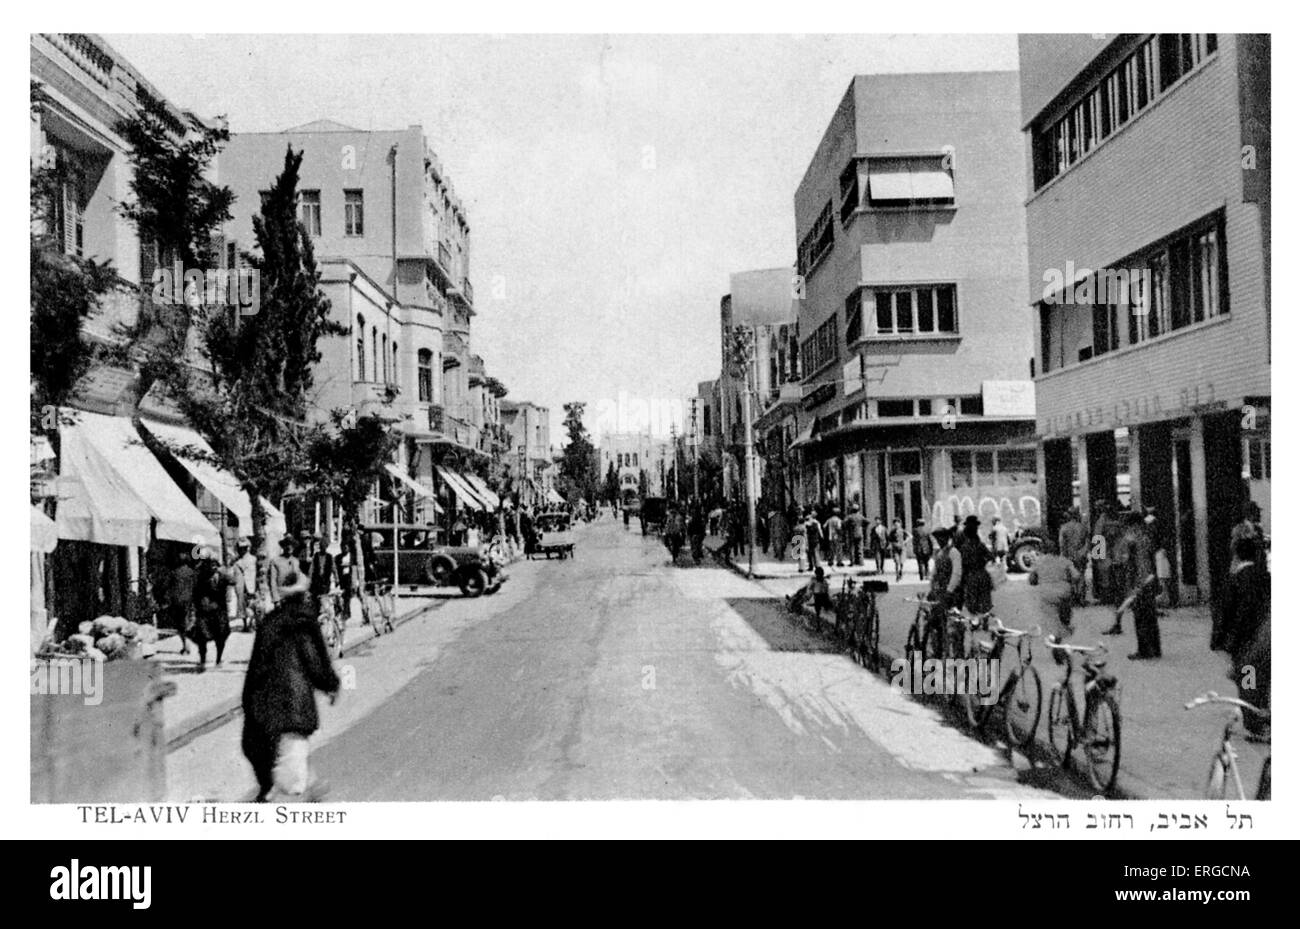 Tel Aviv. Herzl Street.  !920s. Bicycles lined up in the street. - Stock Image